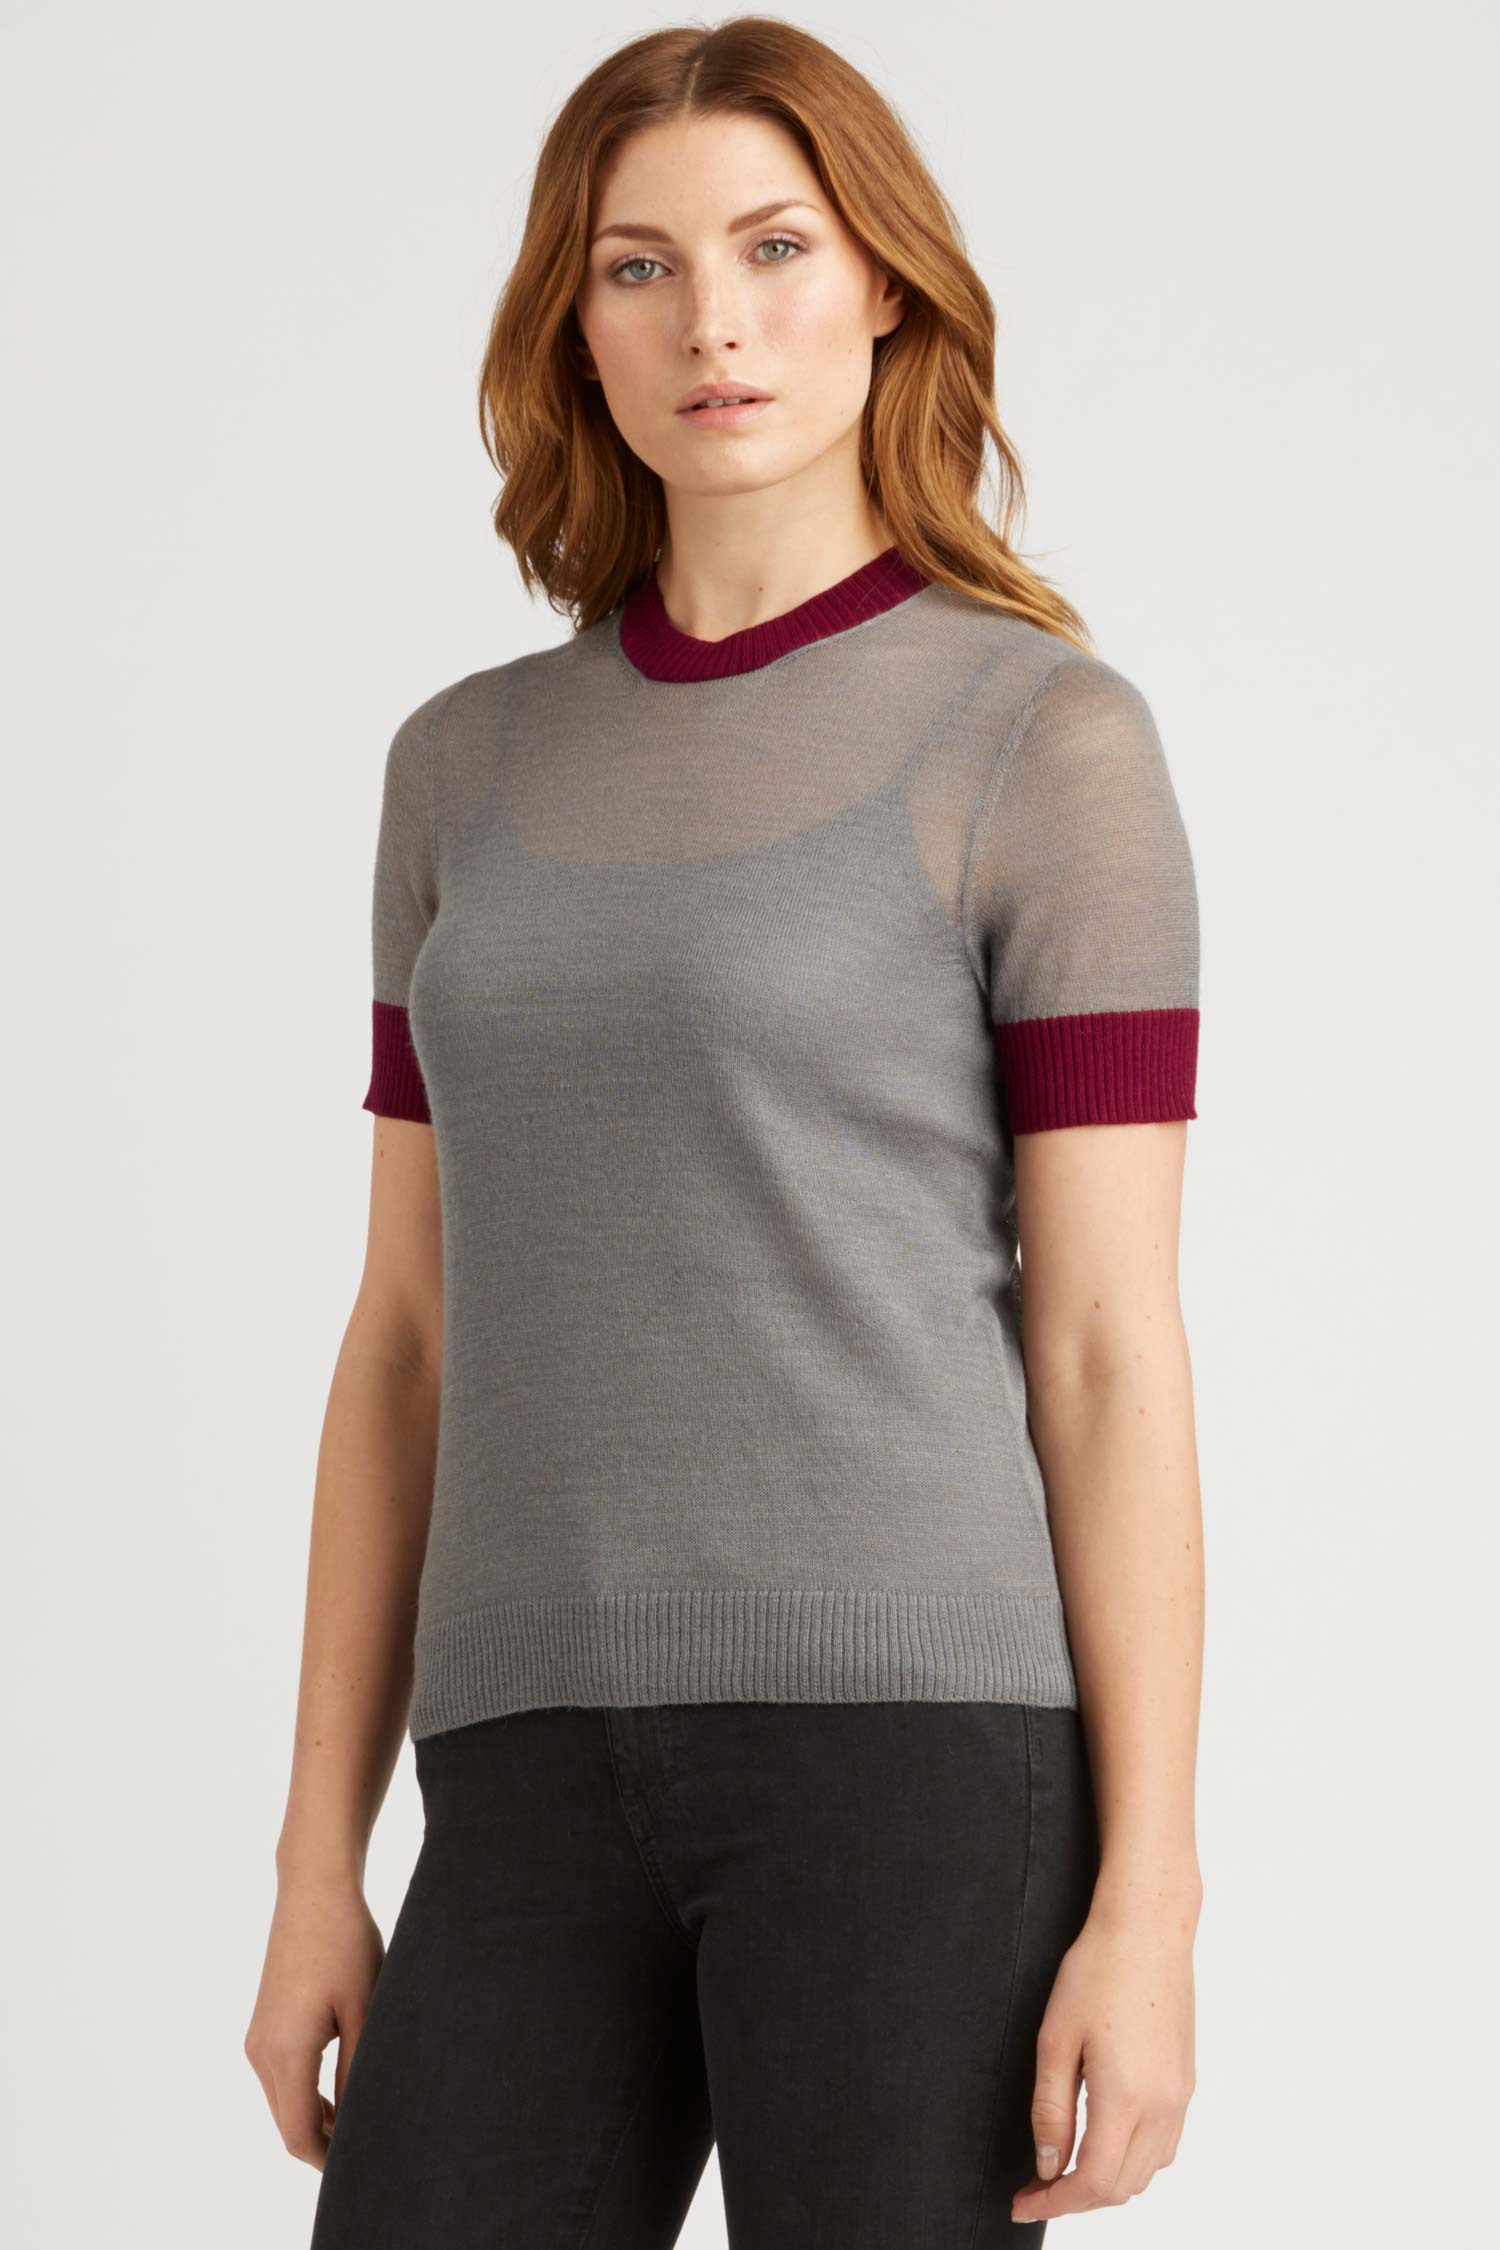 Womens Top | Sheer Alpaca Silk Tee | Gray